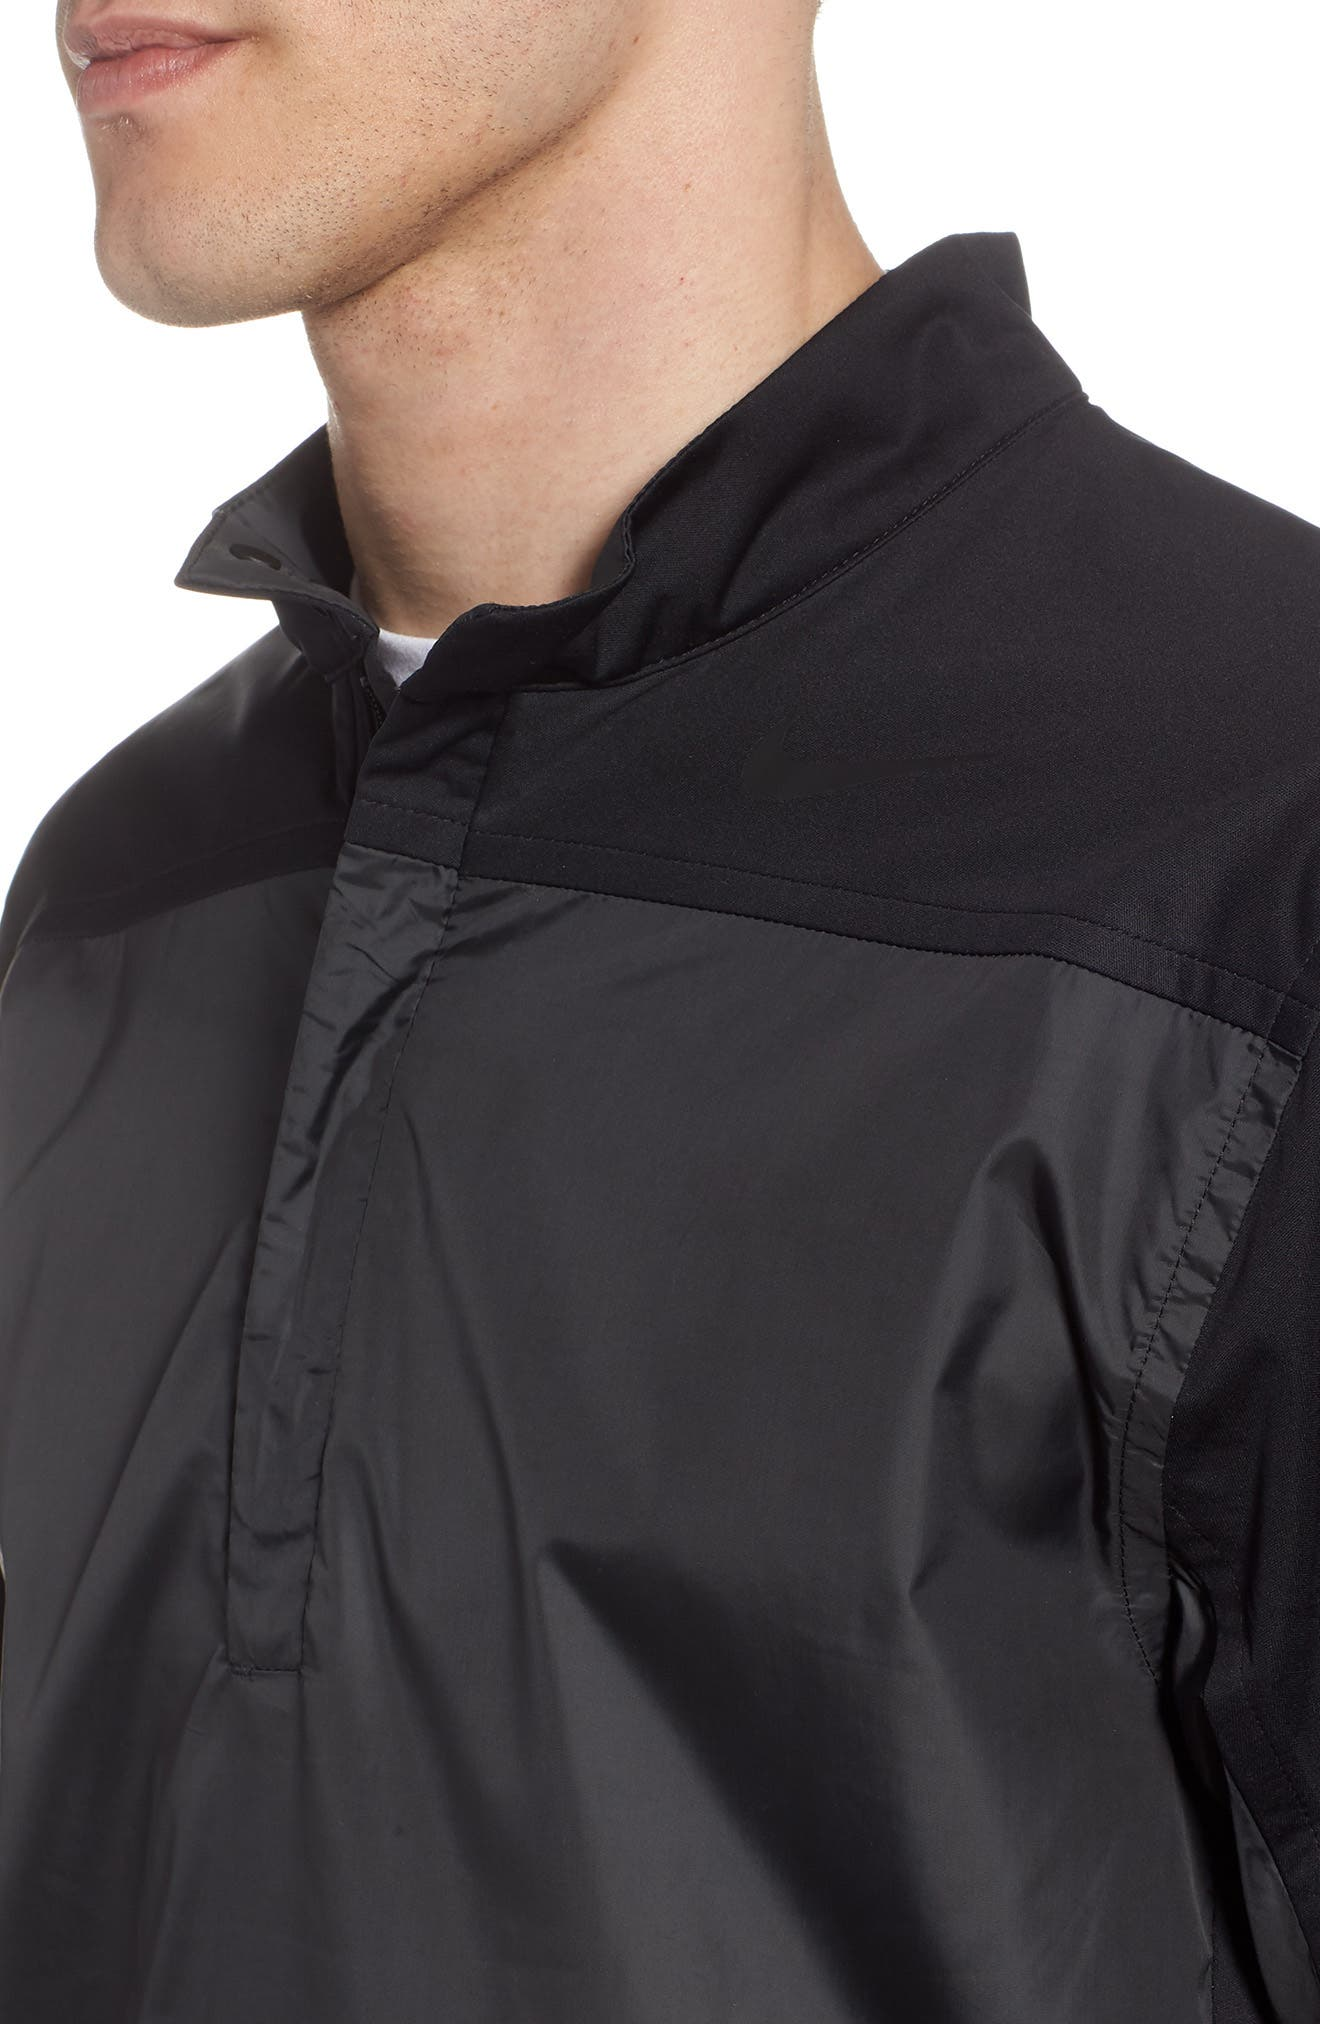 Shield Full Zip Golf Jacket,                             Alternate thumbnail 7, color,